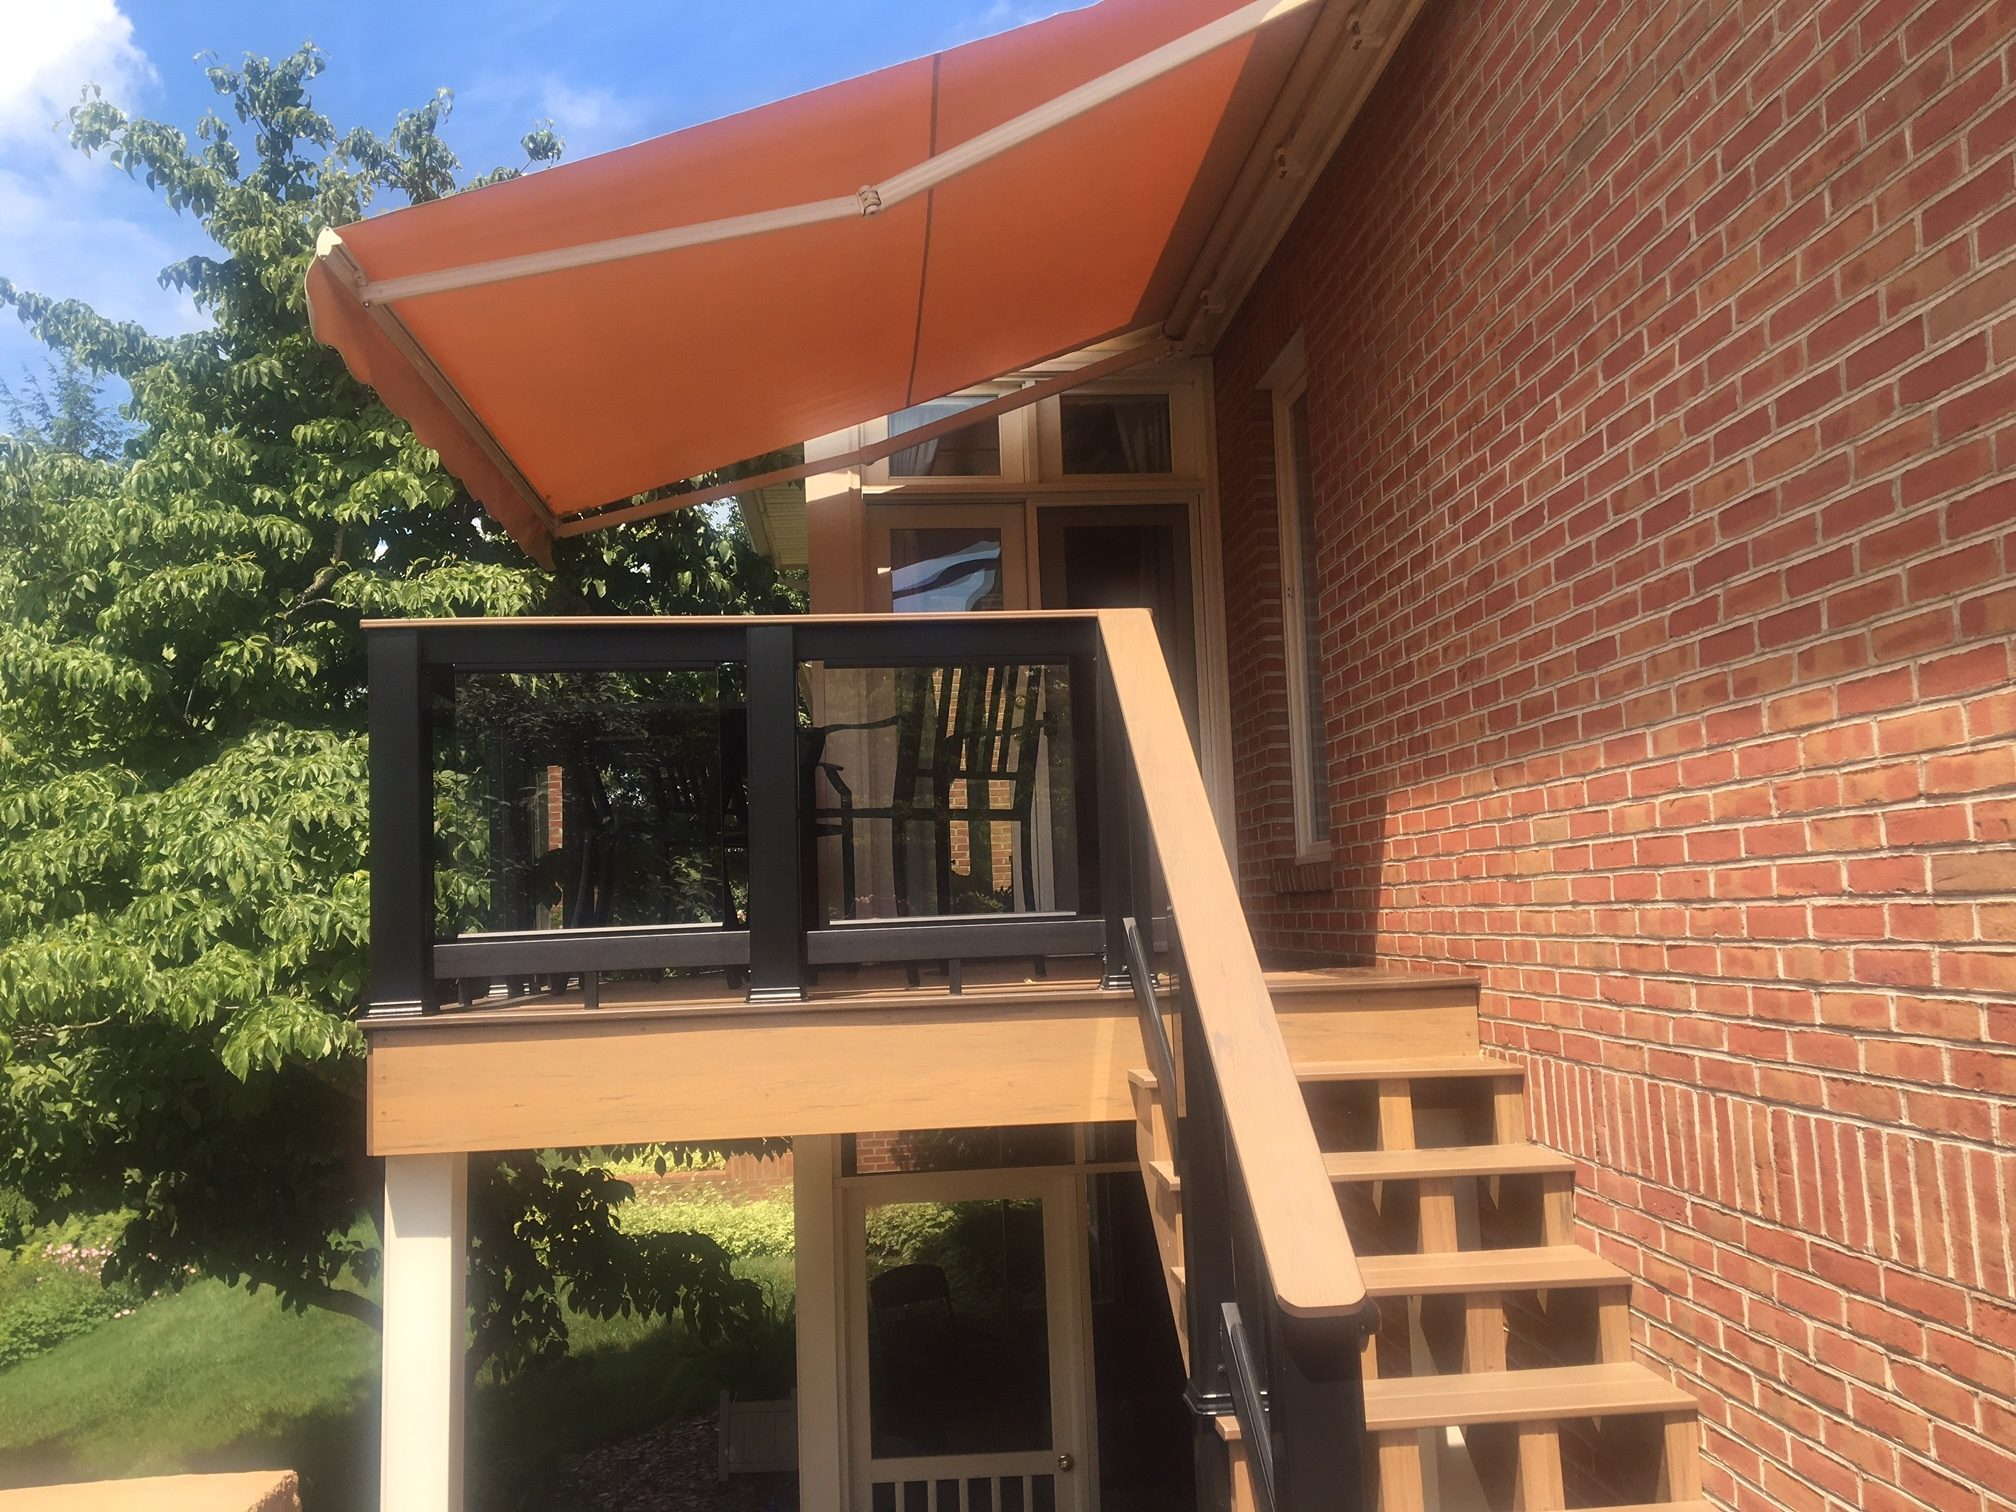 Home Depot Sunsetter Awnings : Sunsetter awning prices awesome protective